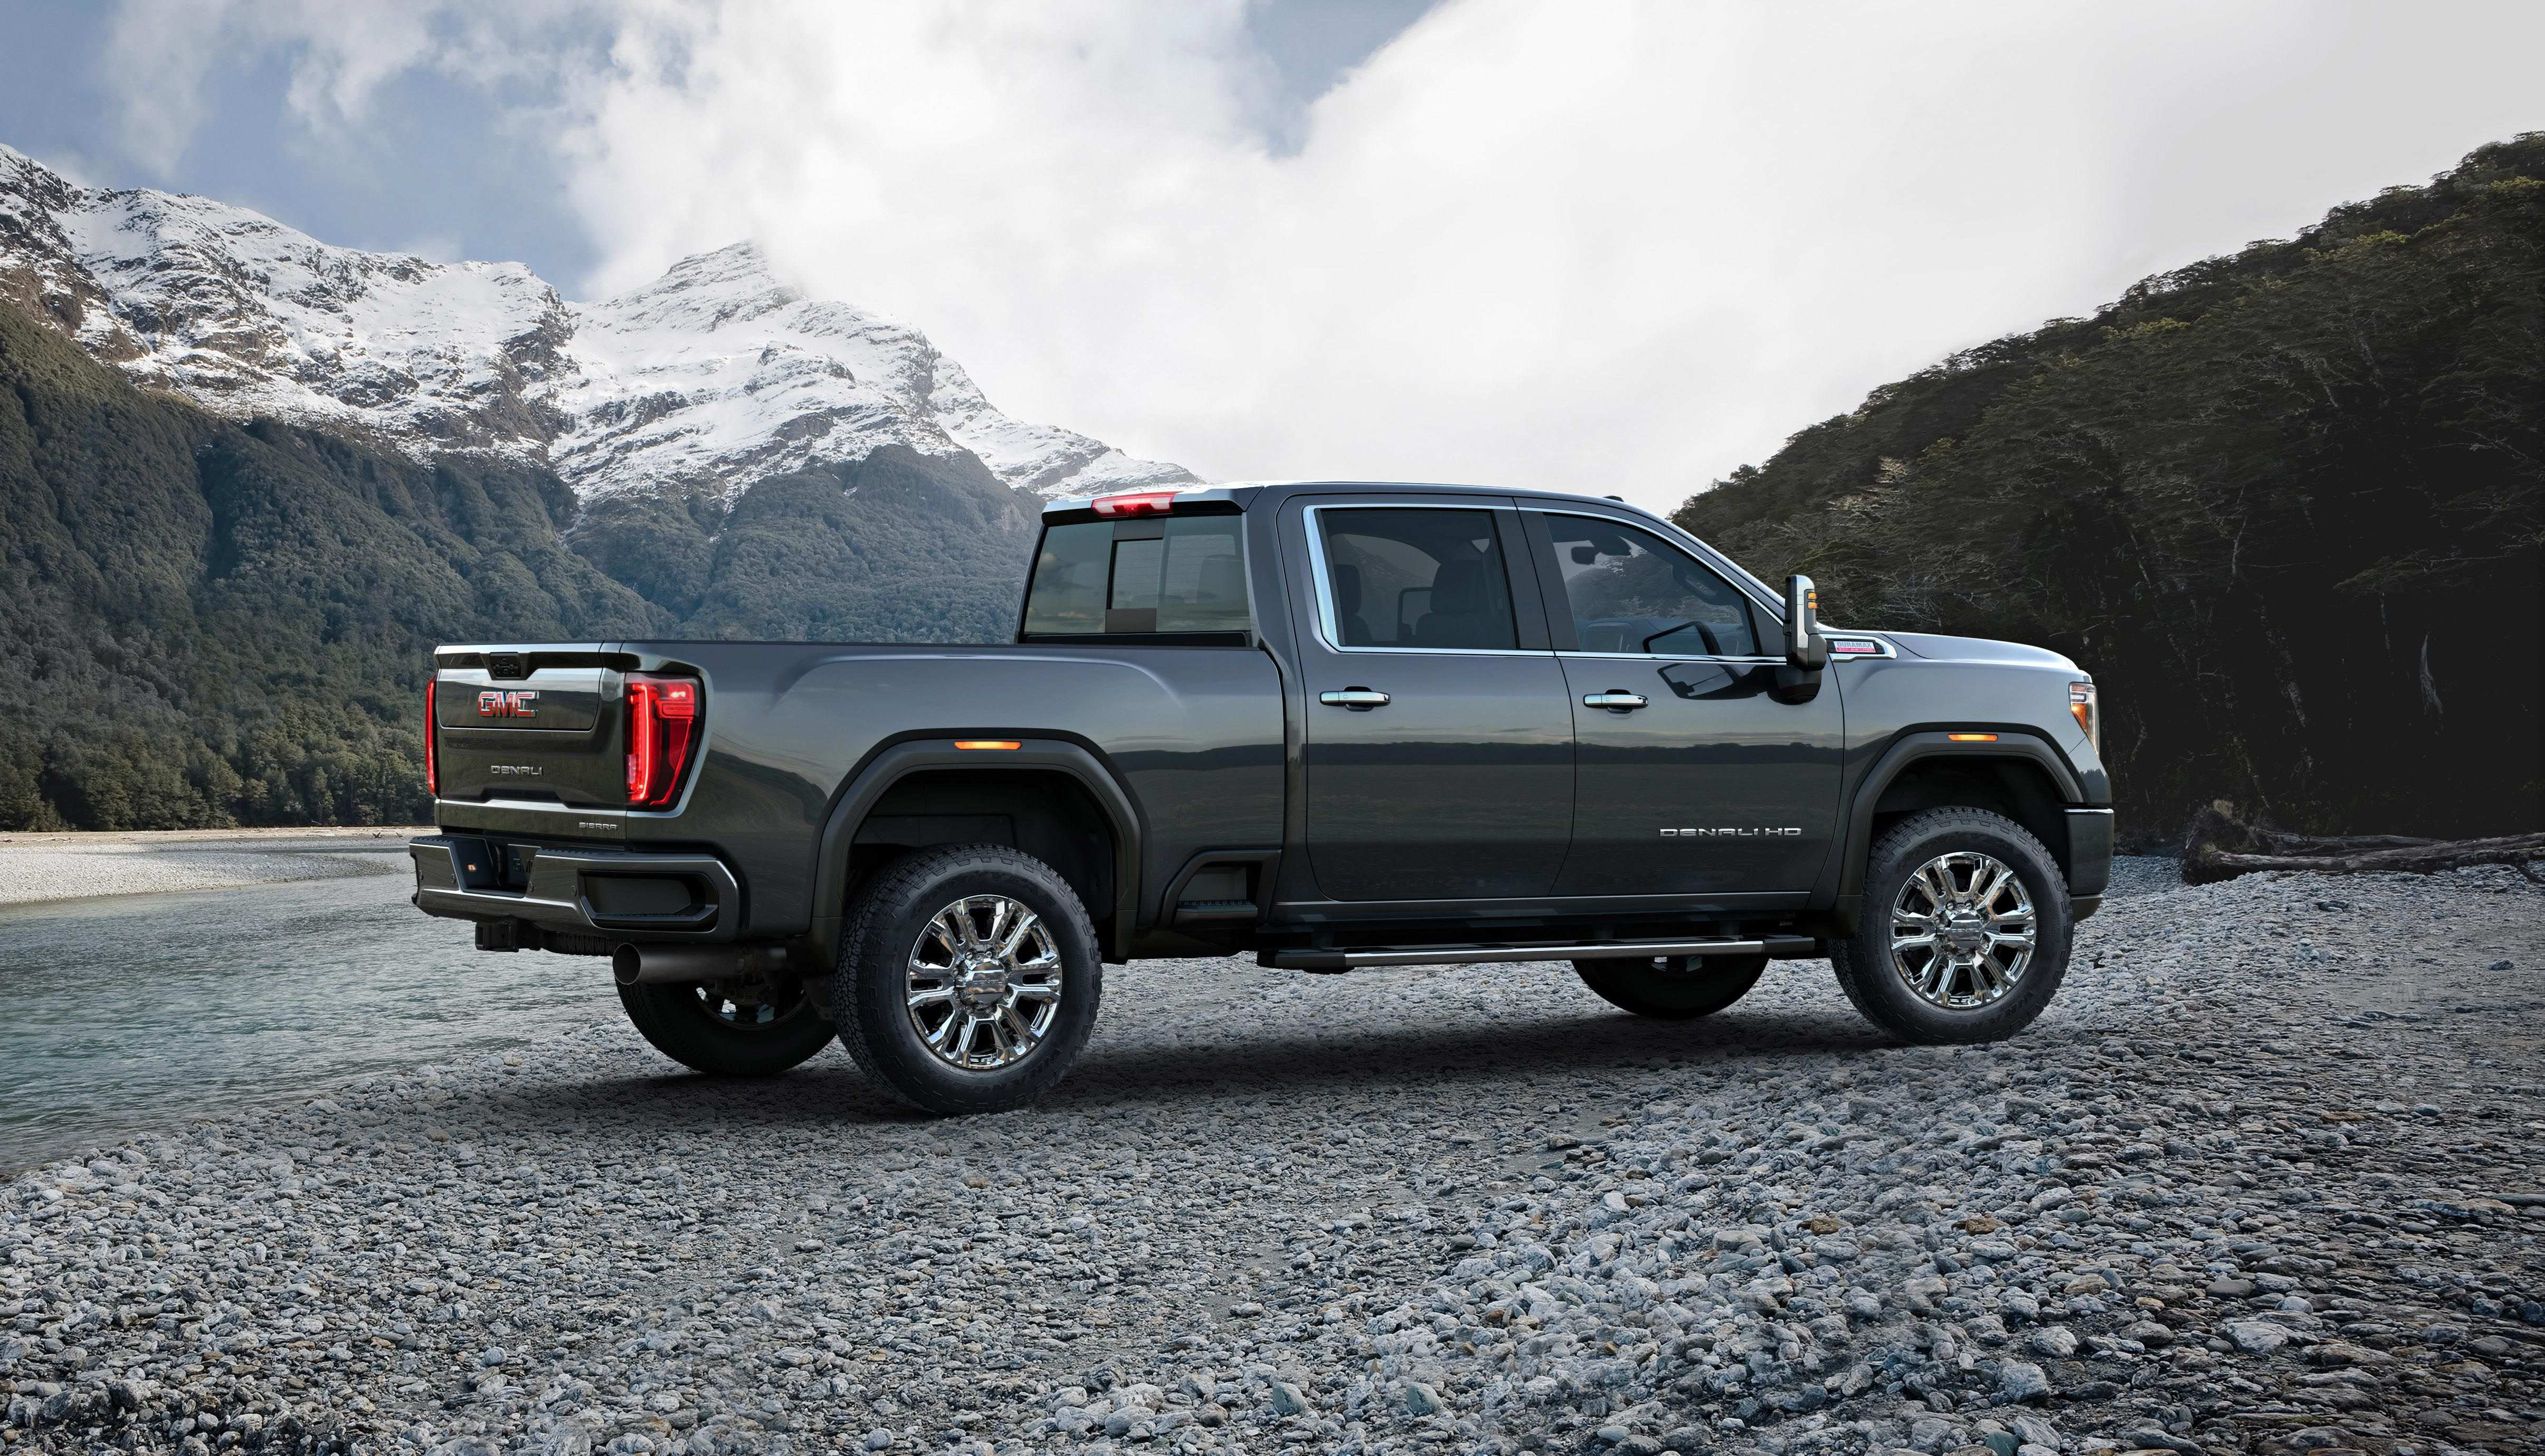 38 New 2020 Gmc 3500 Denali Price Redesign And Concept